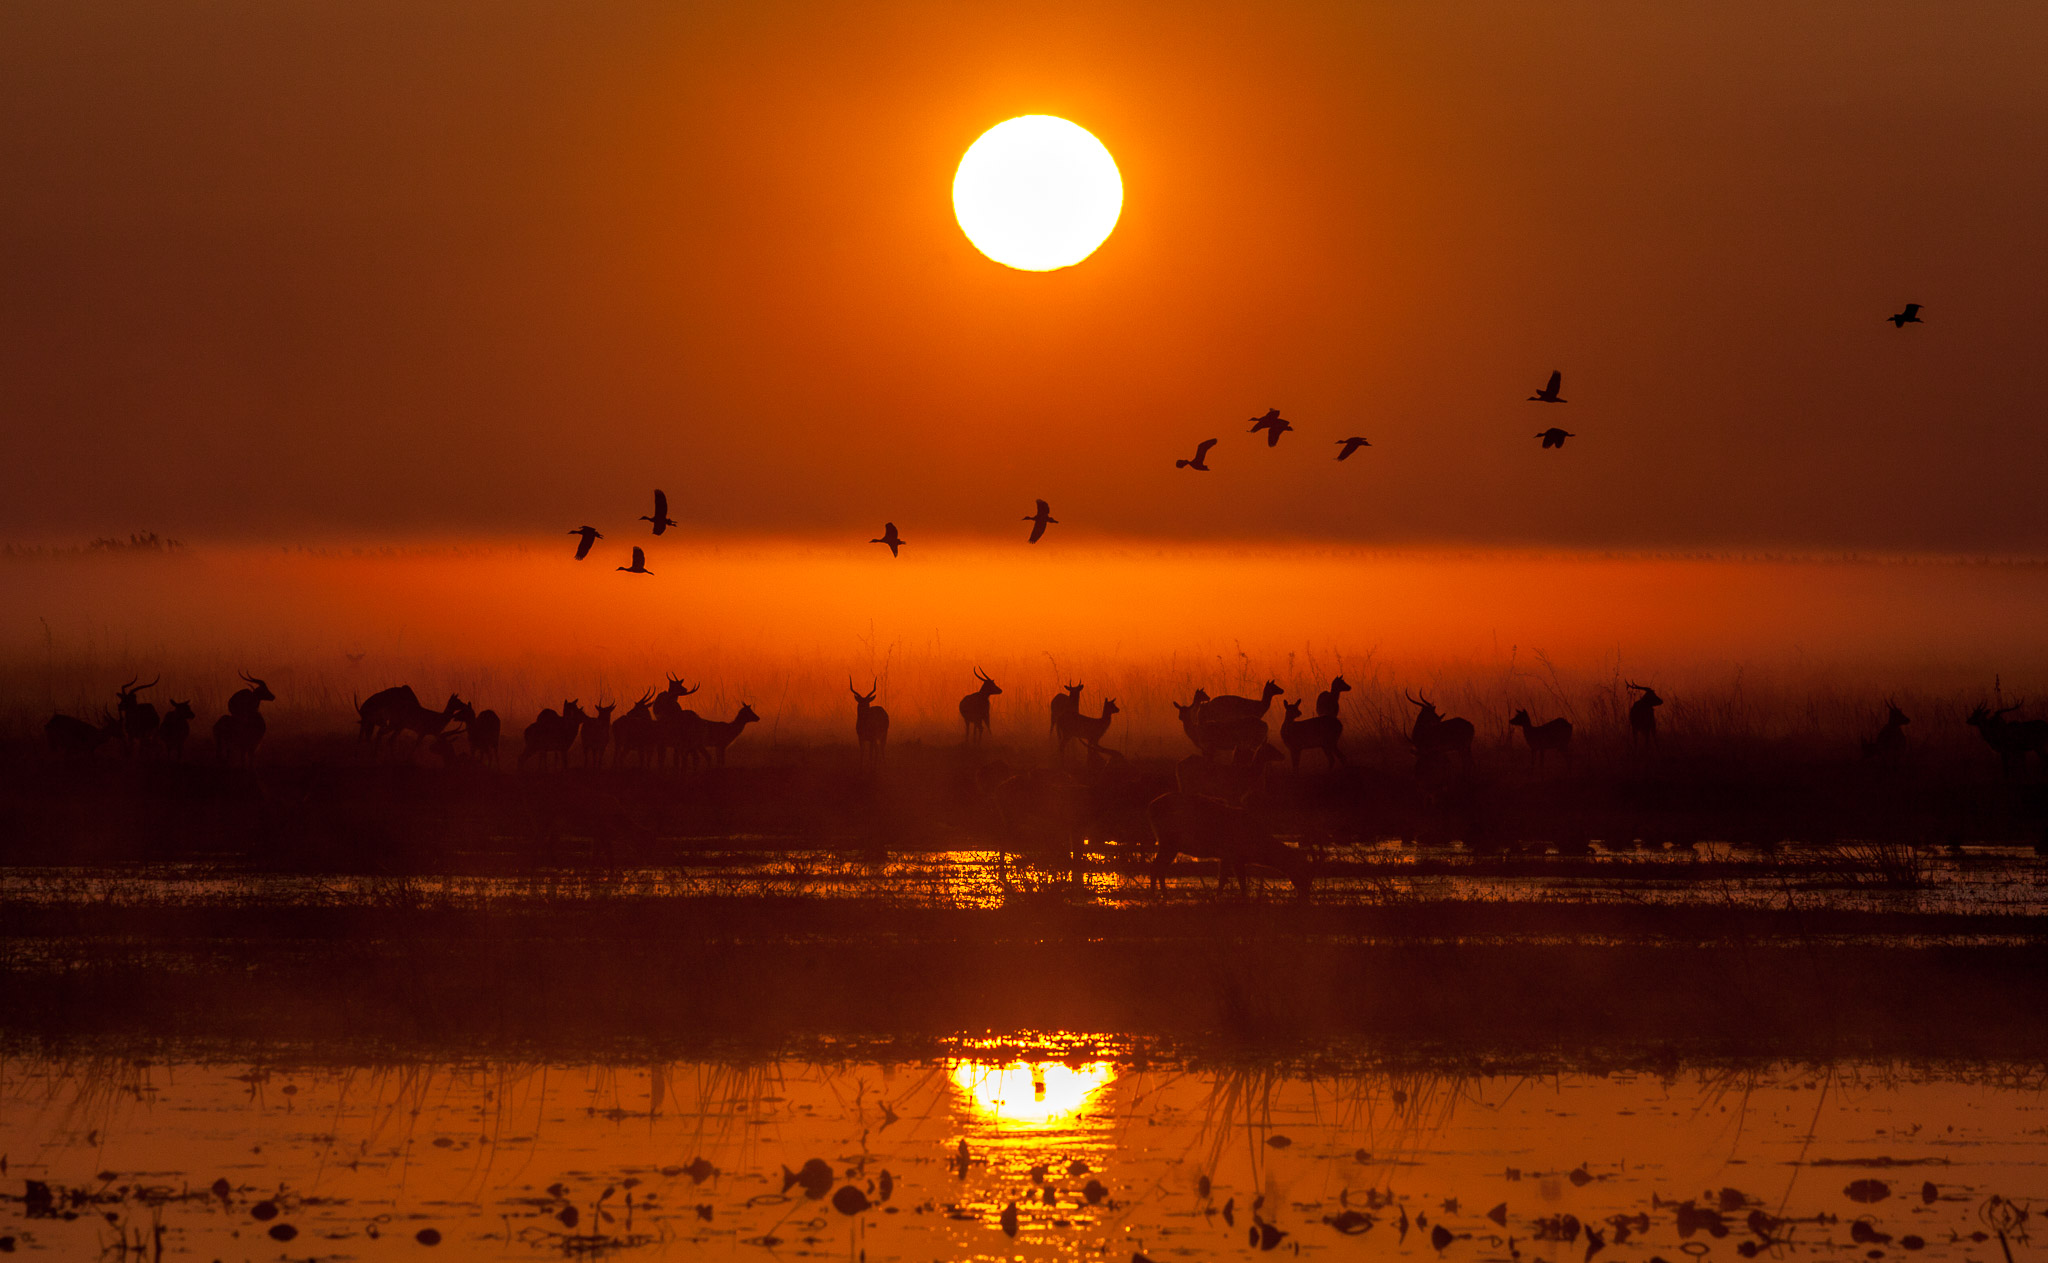 Sunrise over a wetland with antelope and bird silhouettes